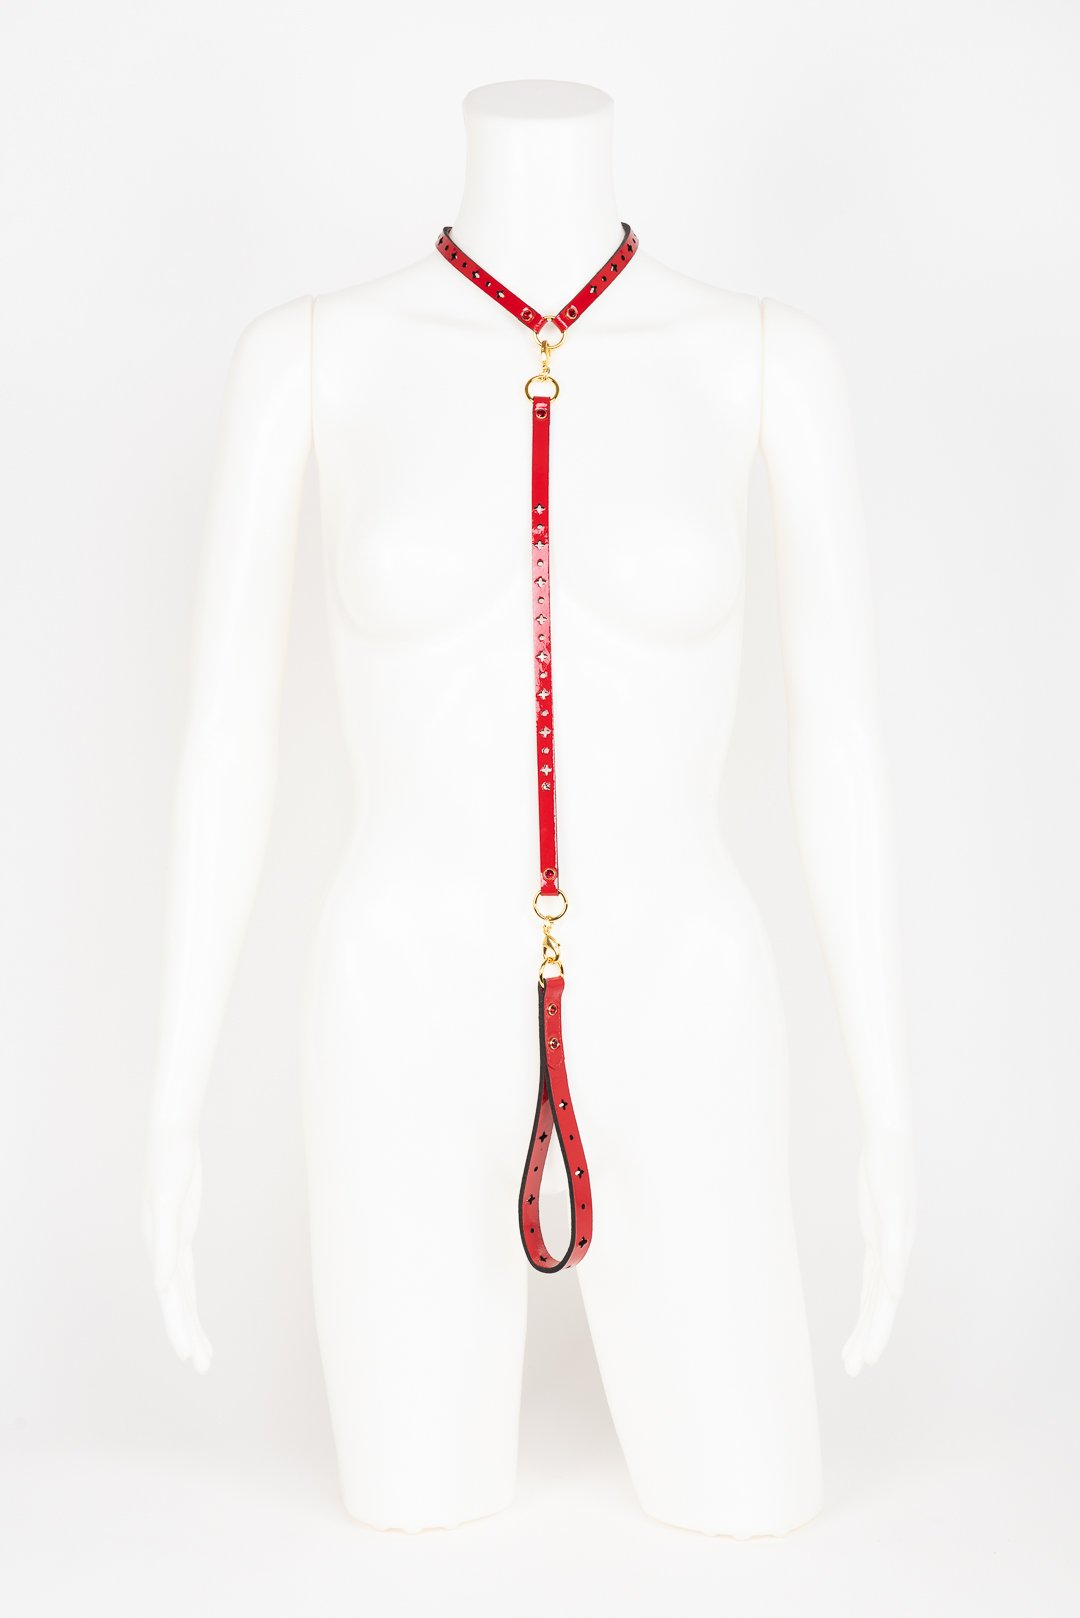 Luxury Patent Leather Lead T Strap buy online at Fraulein Kink